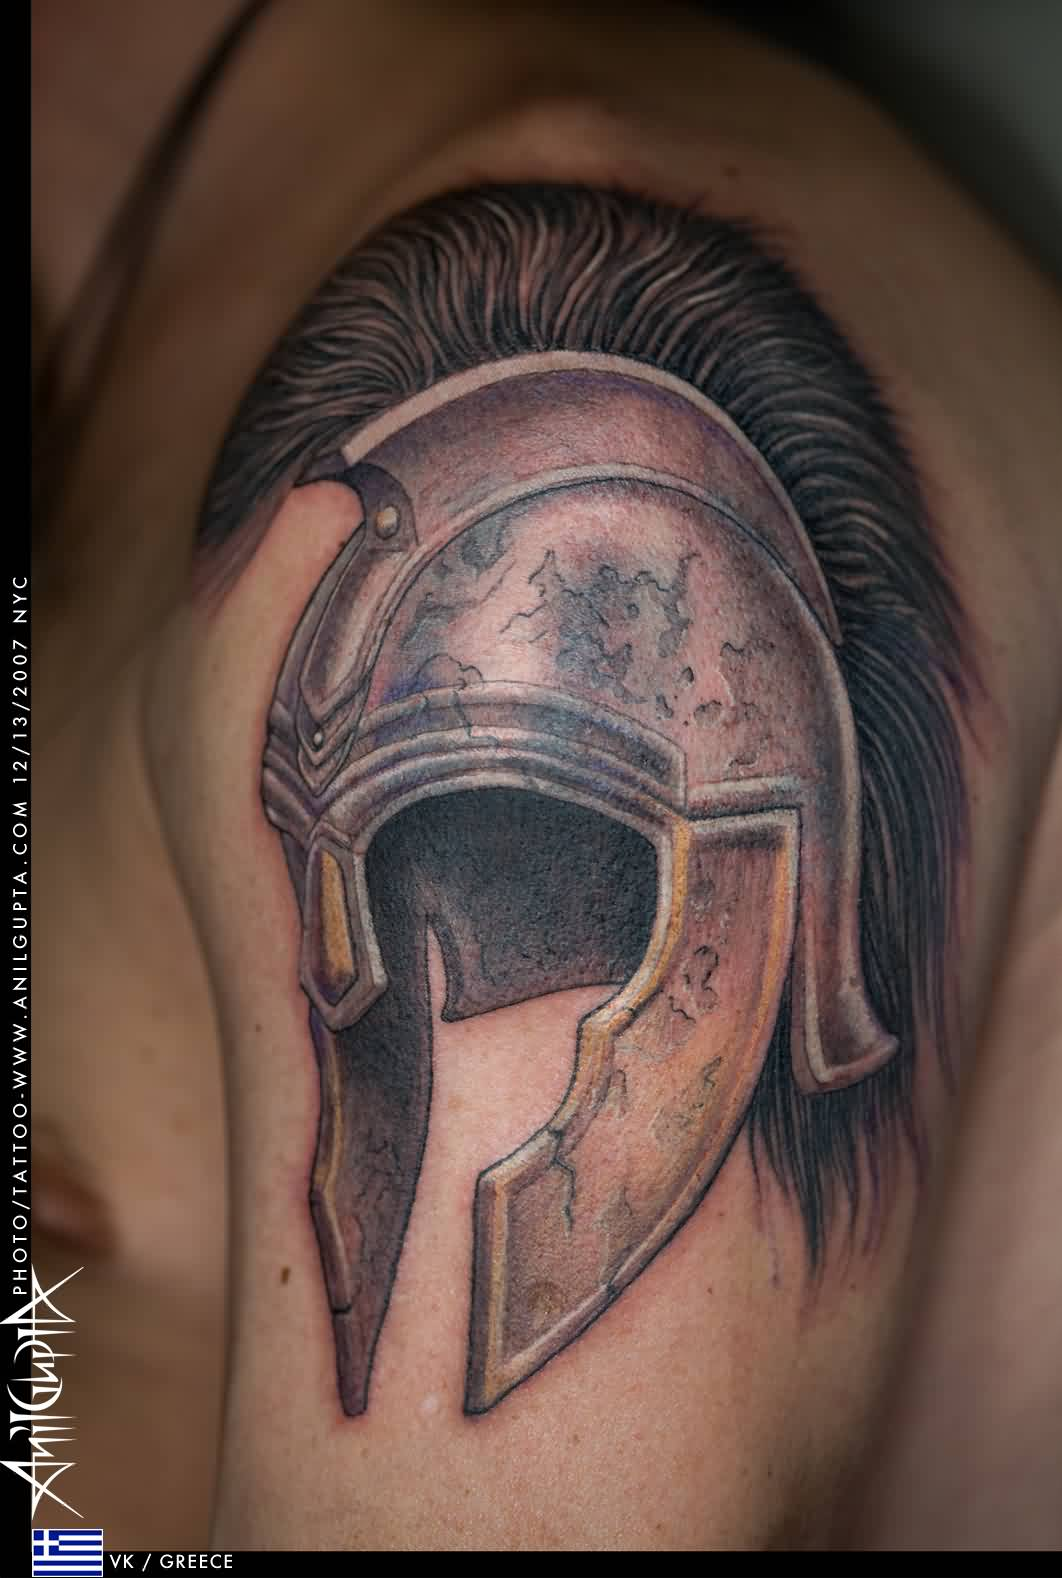 Oustanding Warrior's Helmet Tattoo On Biceps